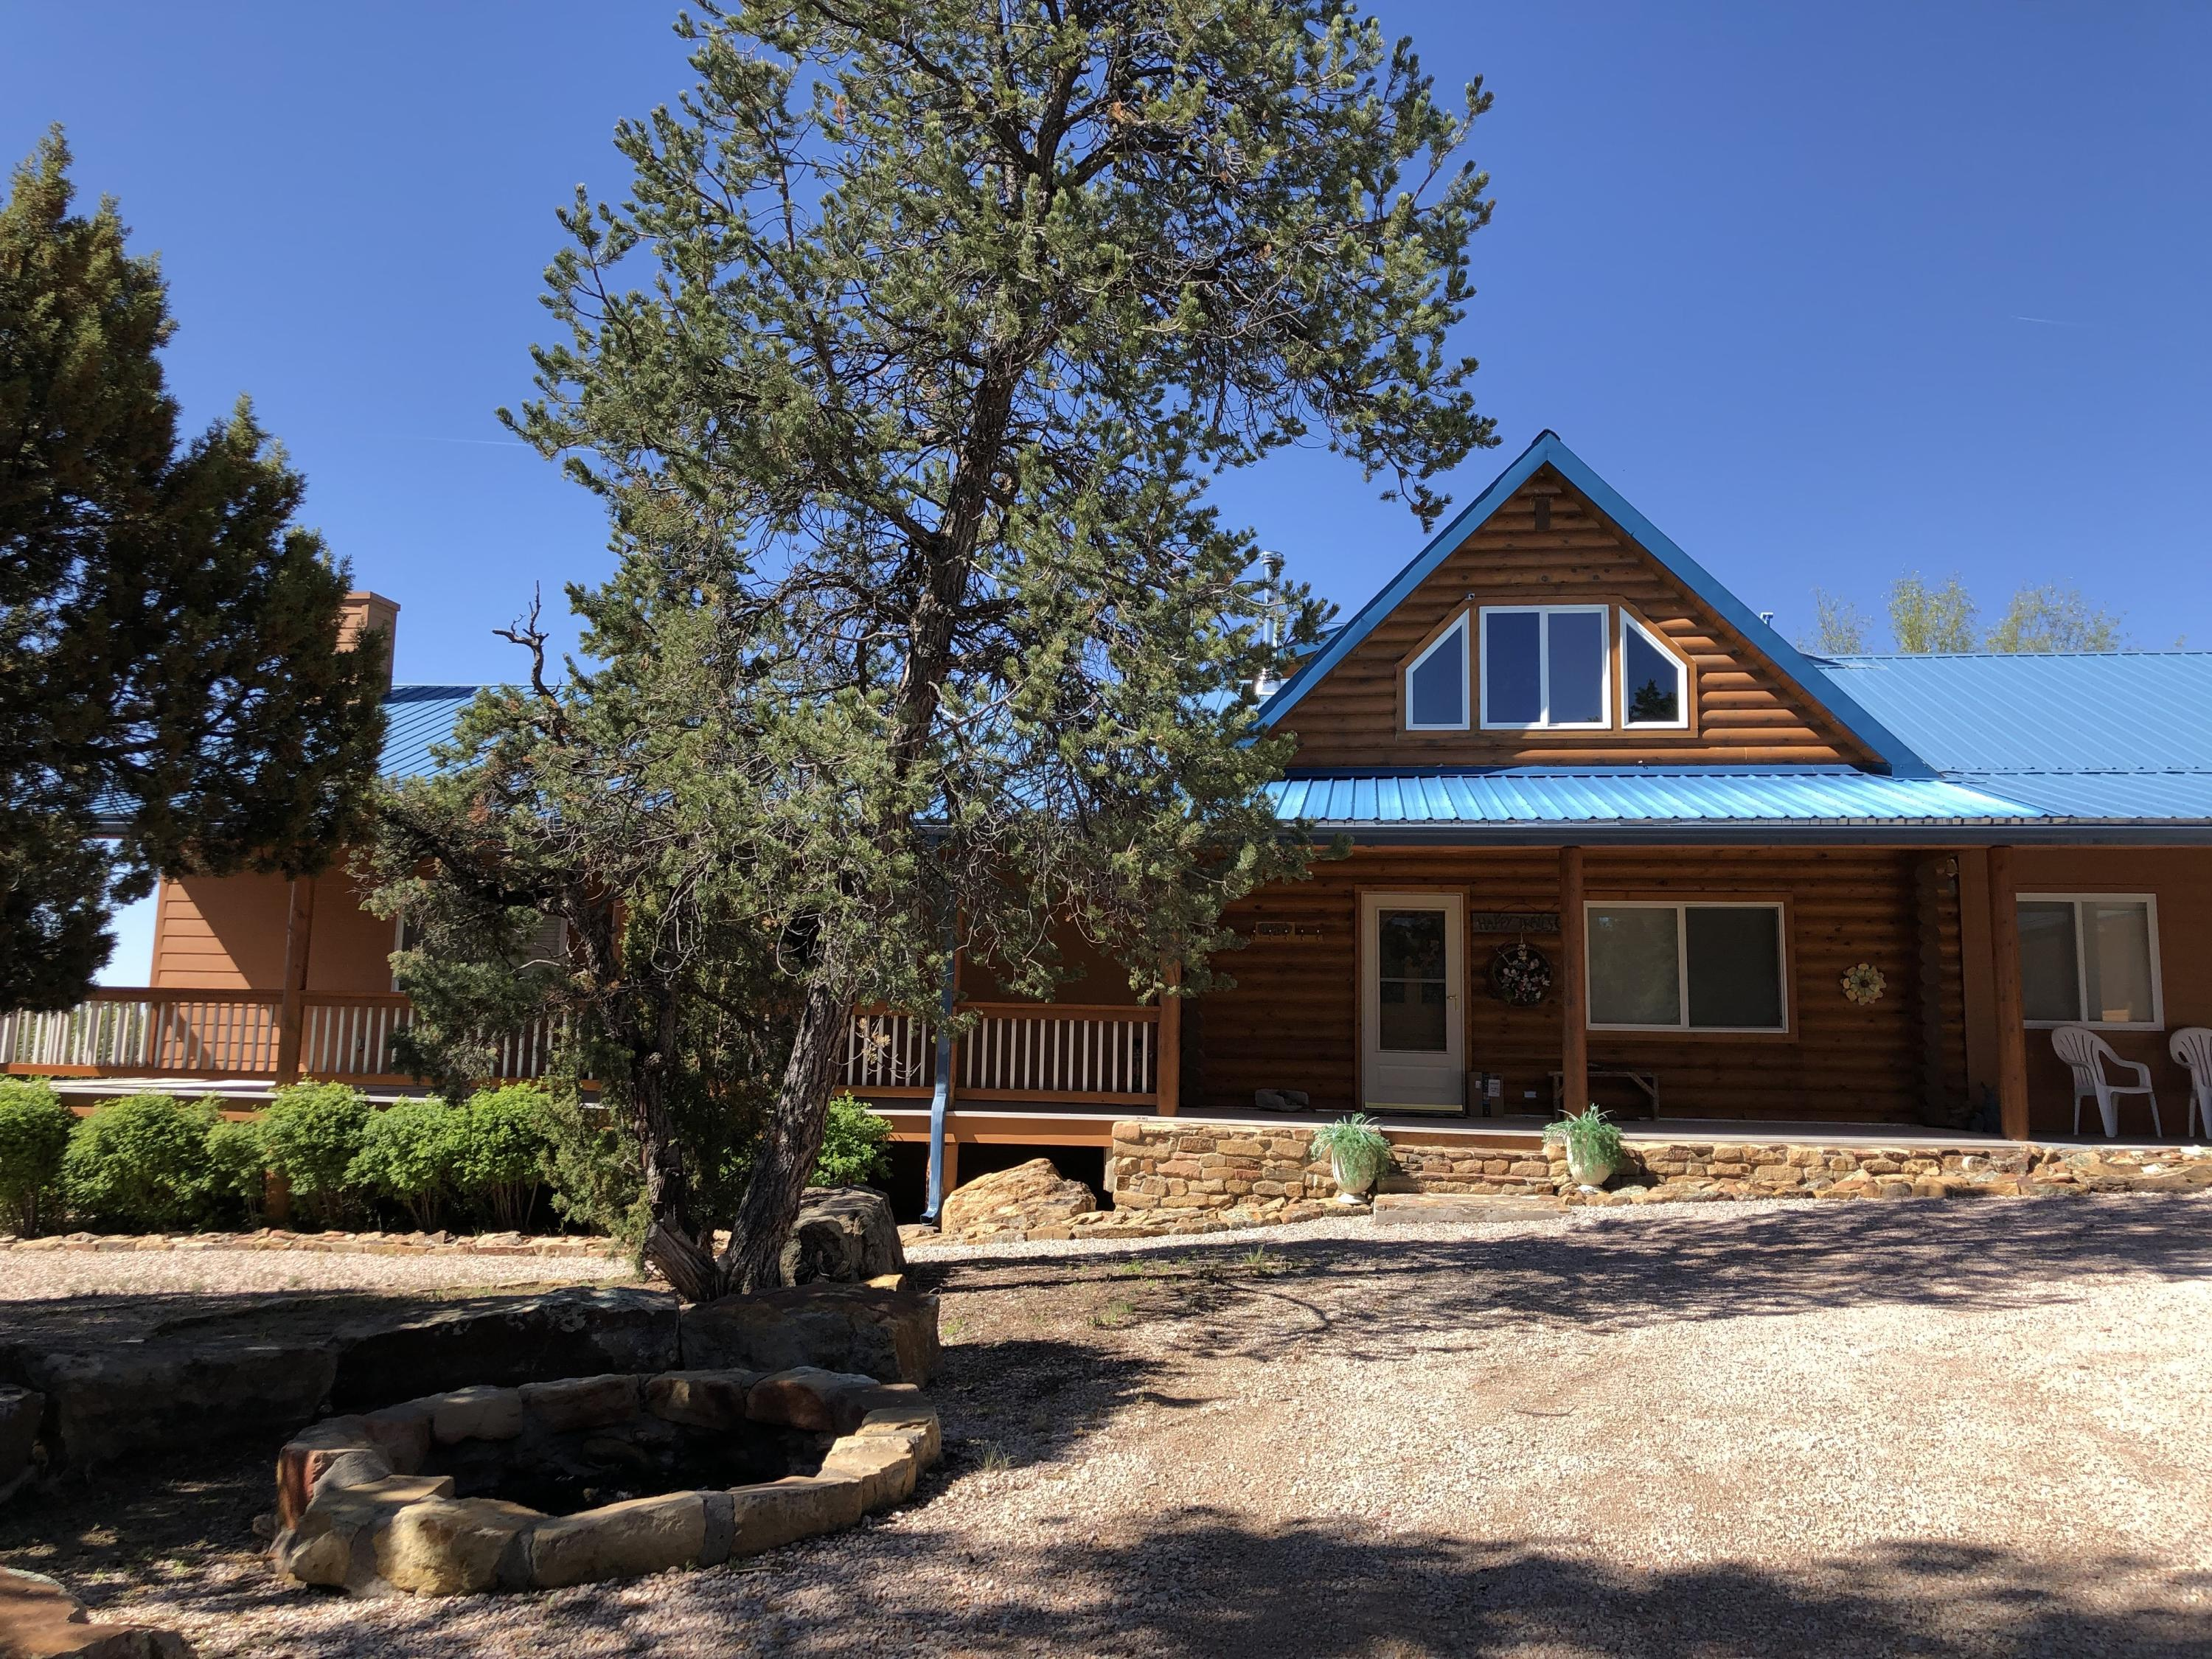 3211 C Hwy. 53, Ramah, NM 87321 - Ramah, NM real estate listing